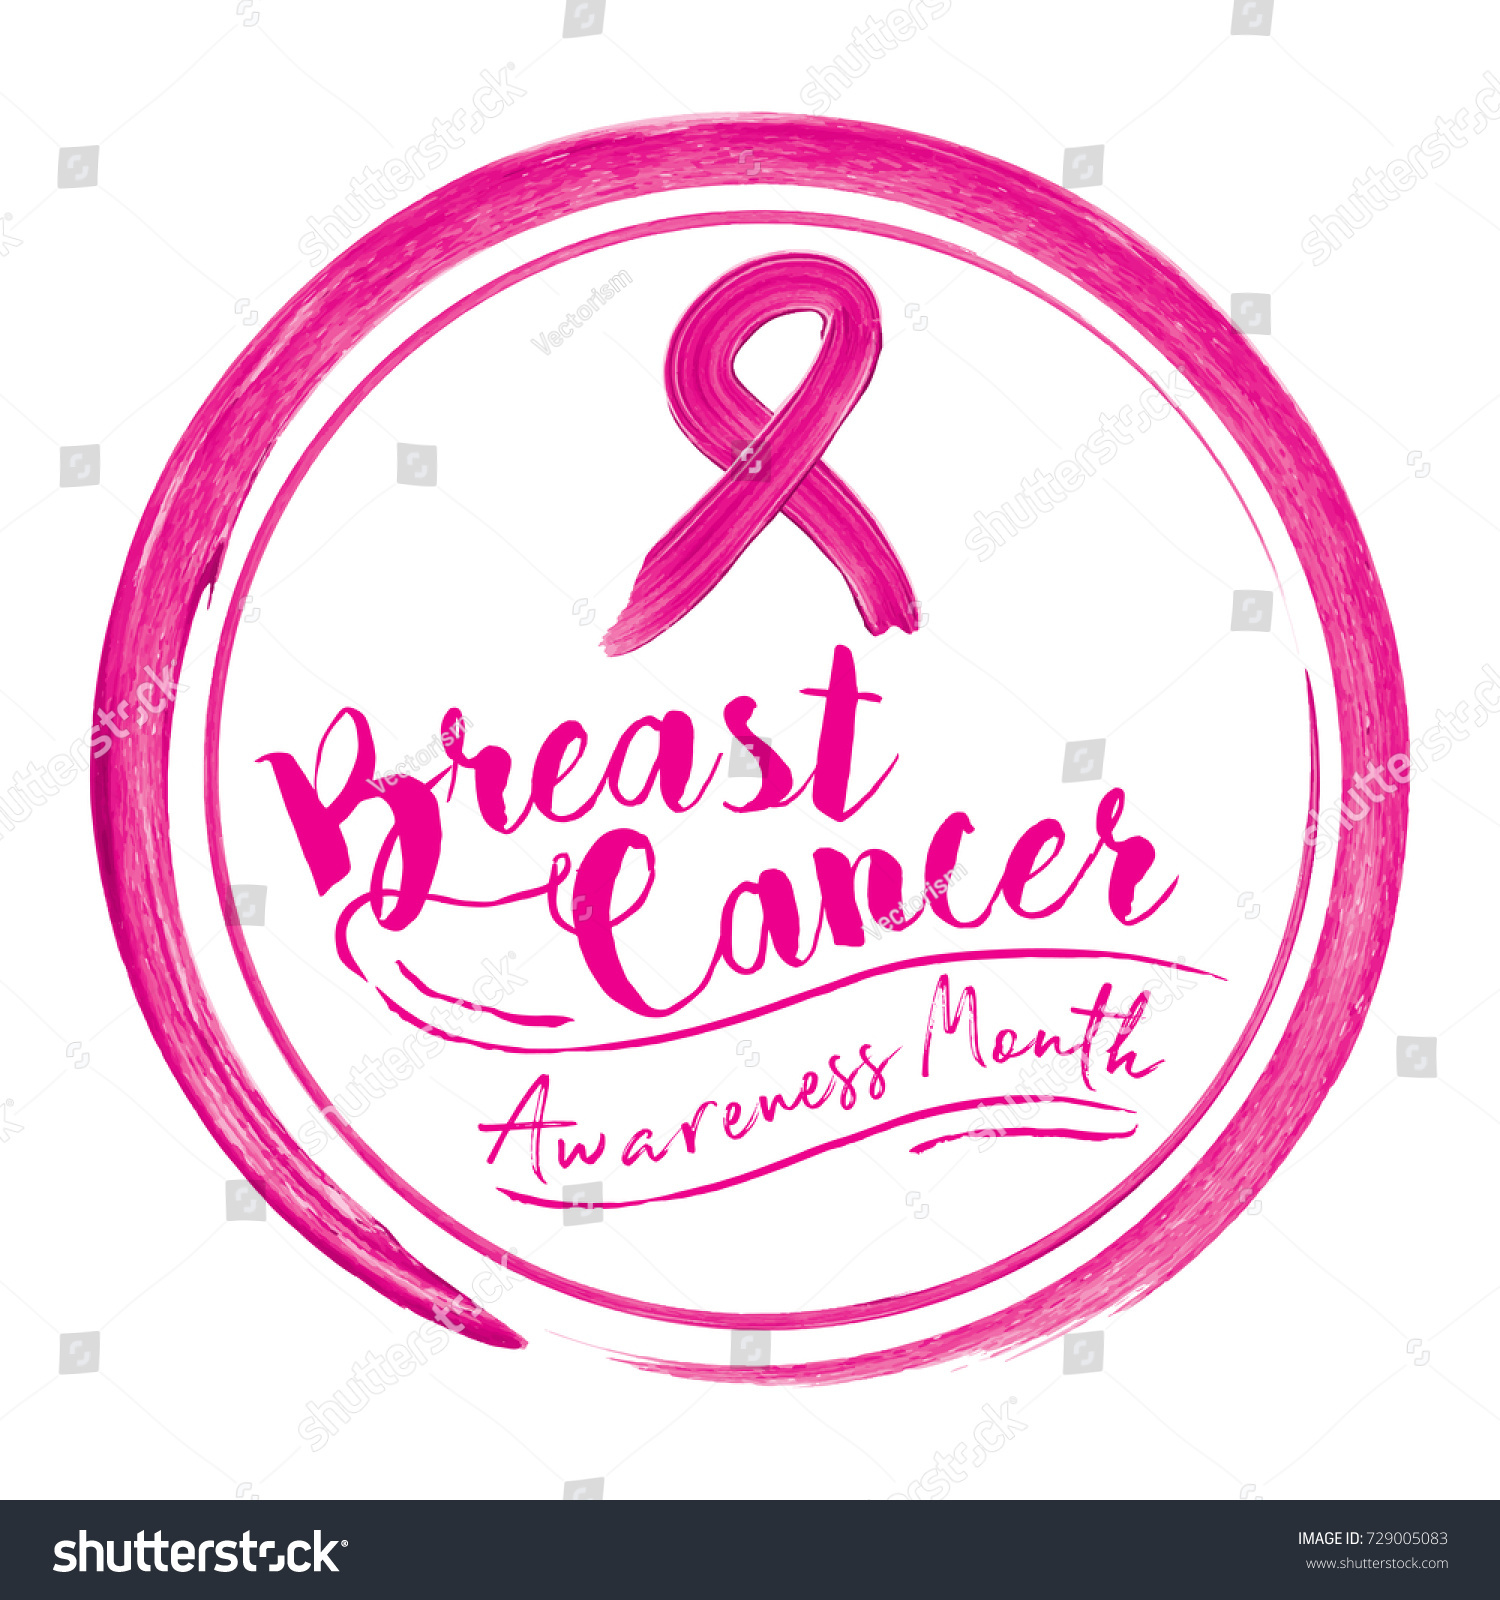 Breast cancer awareness month calligraphy acrylic stock vector breast cancer awareness month calligraphy with acrylic brush pink ribbon symbol for poster buycottarizona Images